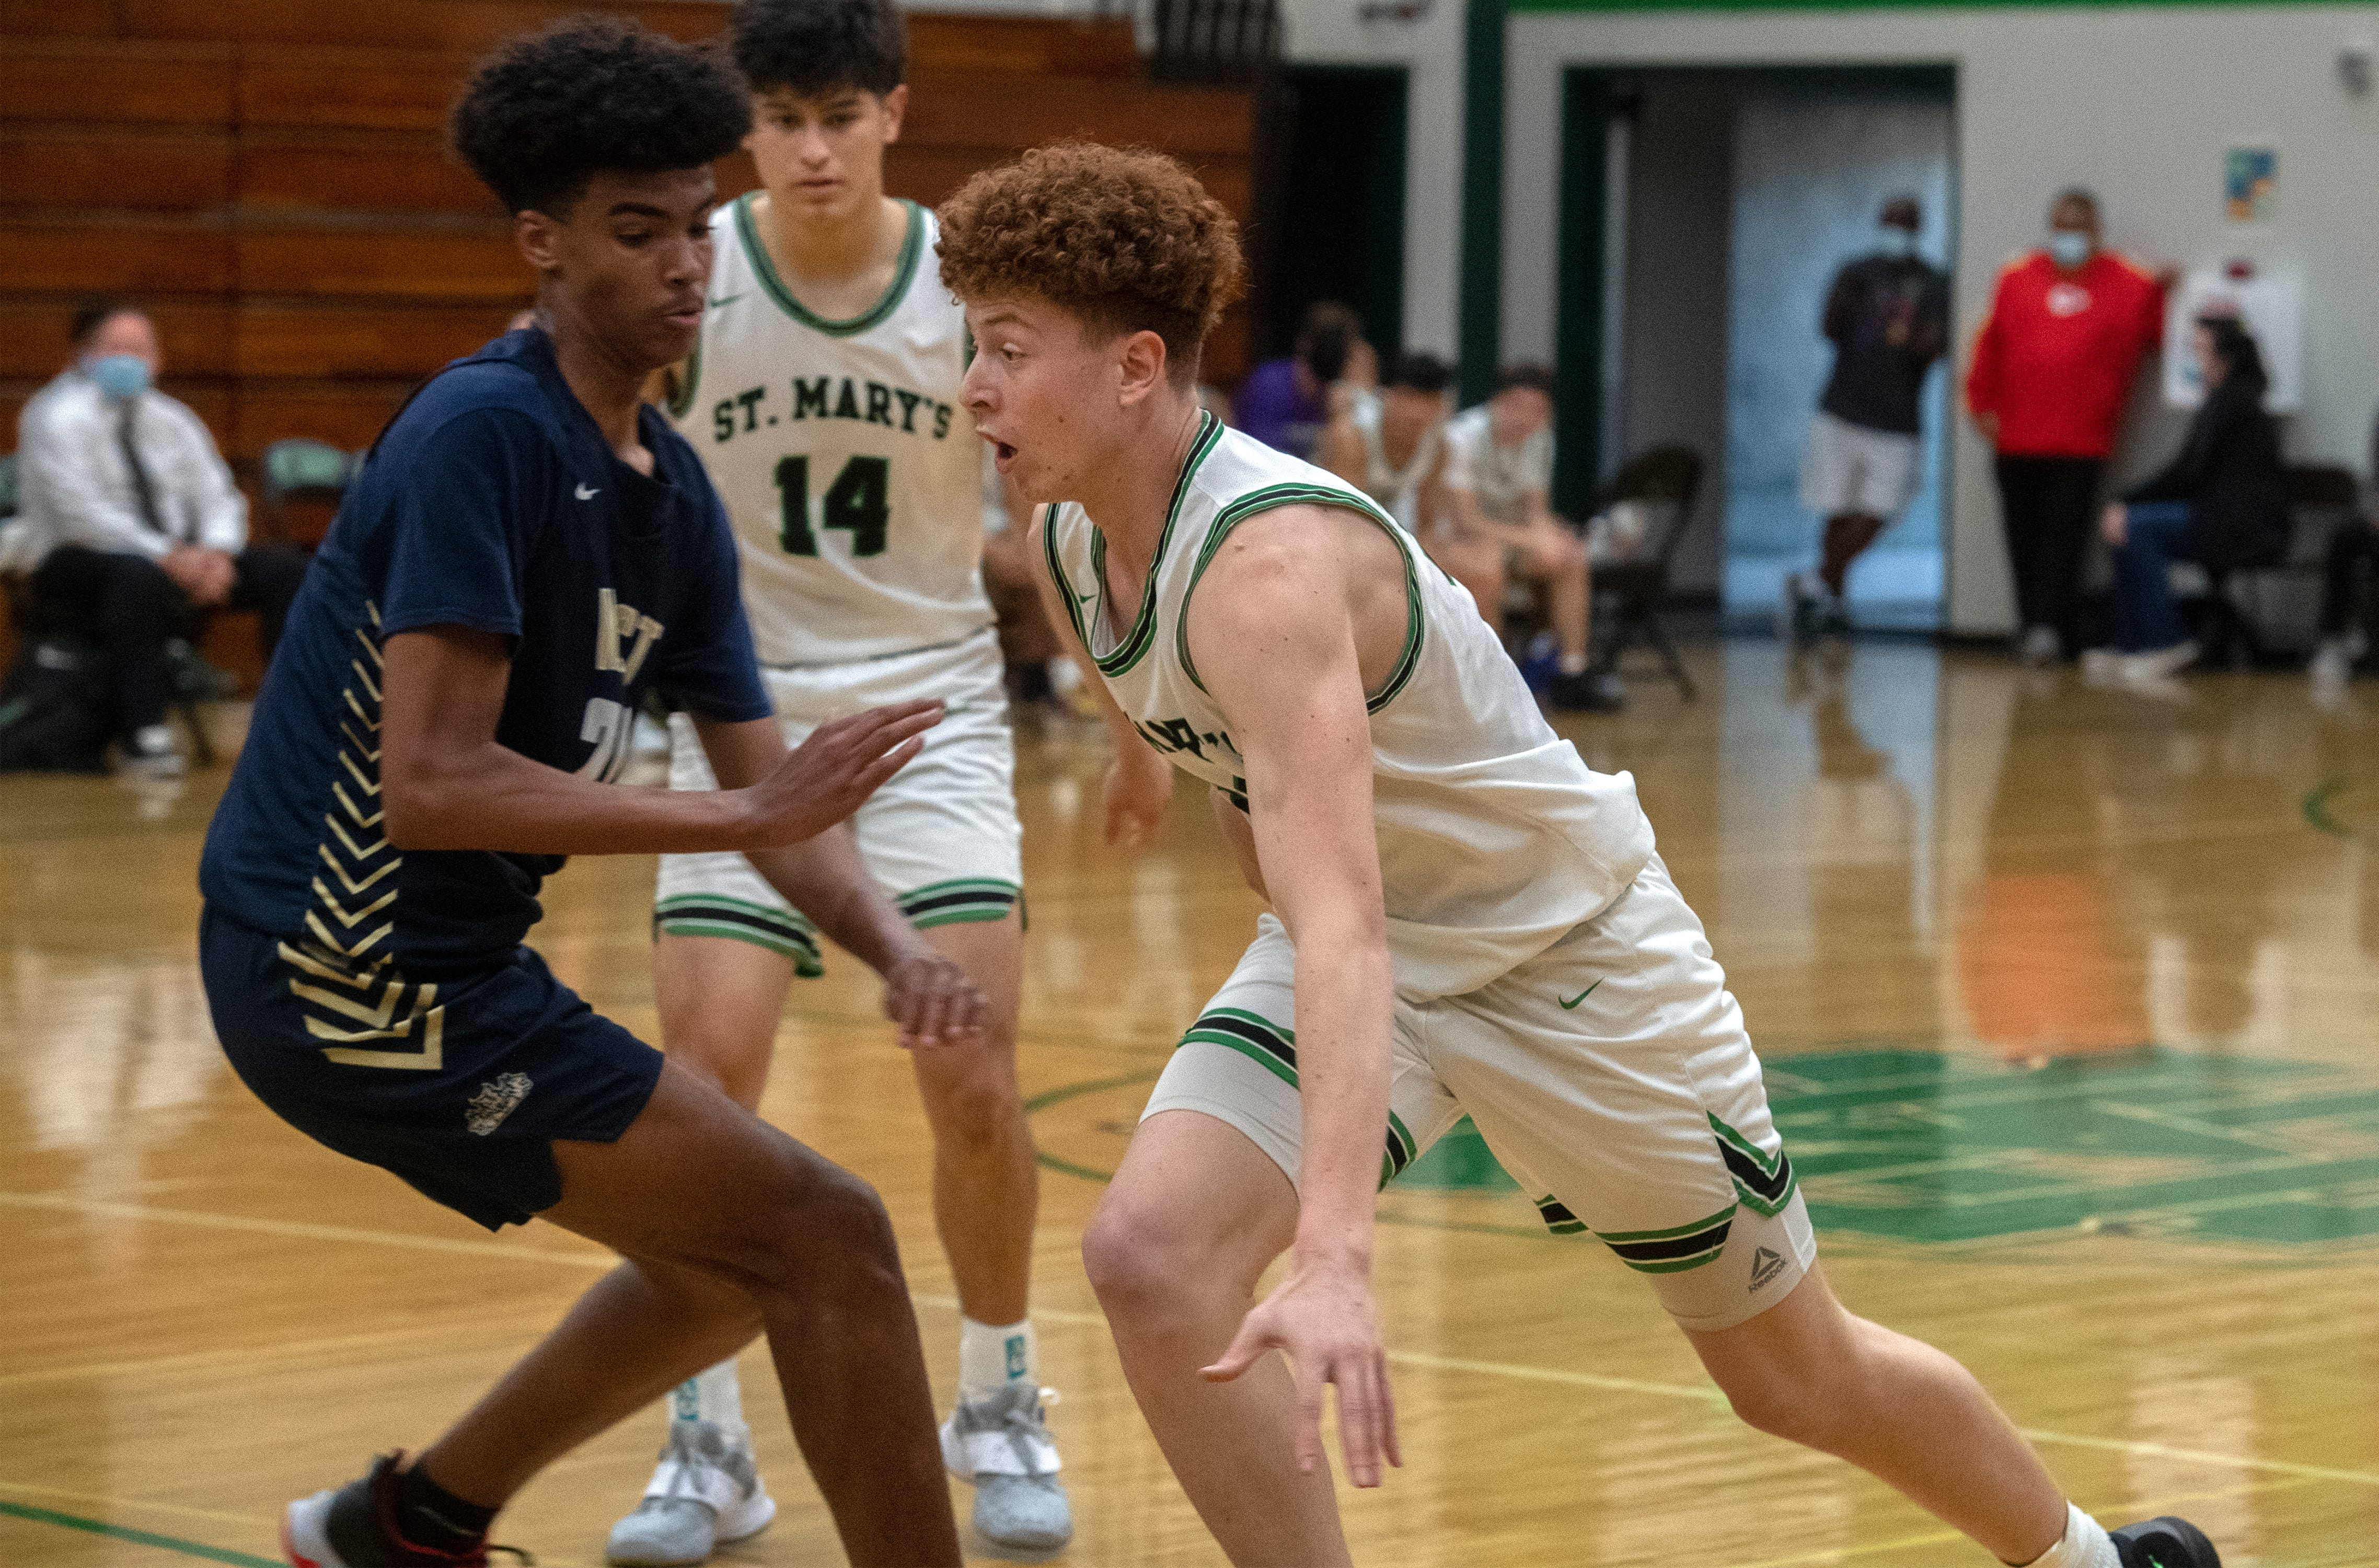 recordnet.com - Justin Frommer, Stockton Record - Roy Itcovichi carves his role with St. Mary's basketball, while also worrying about his family's safety